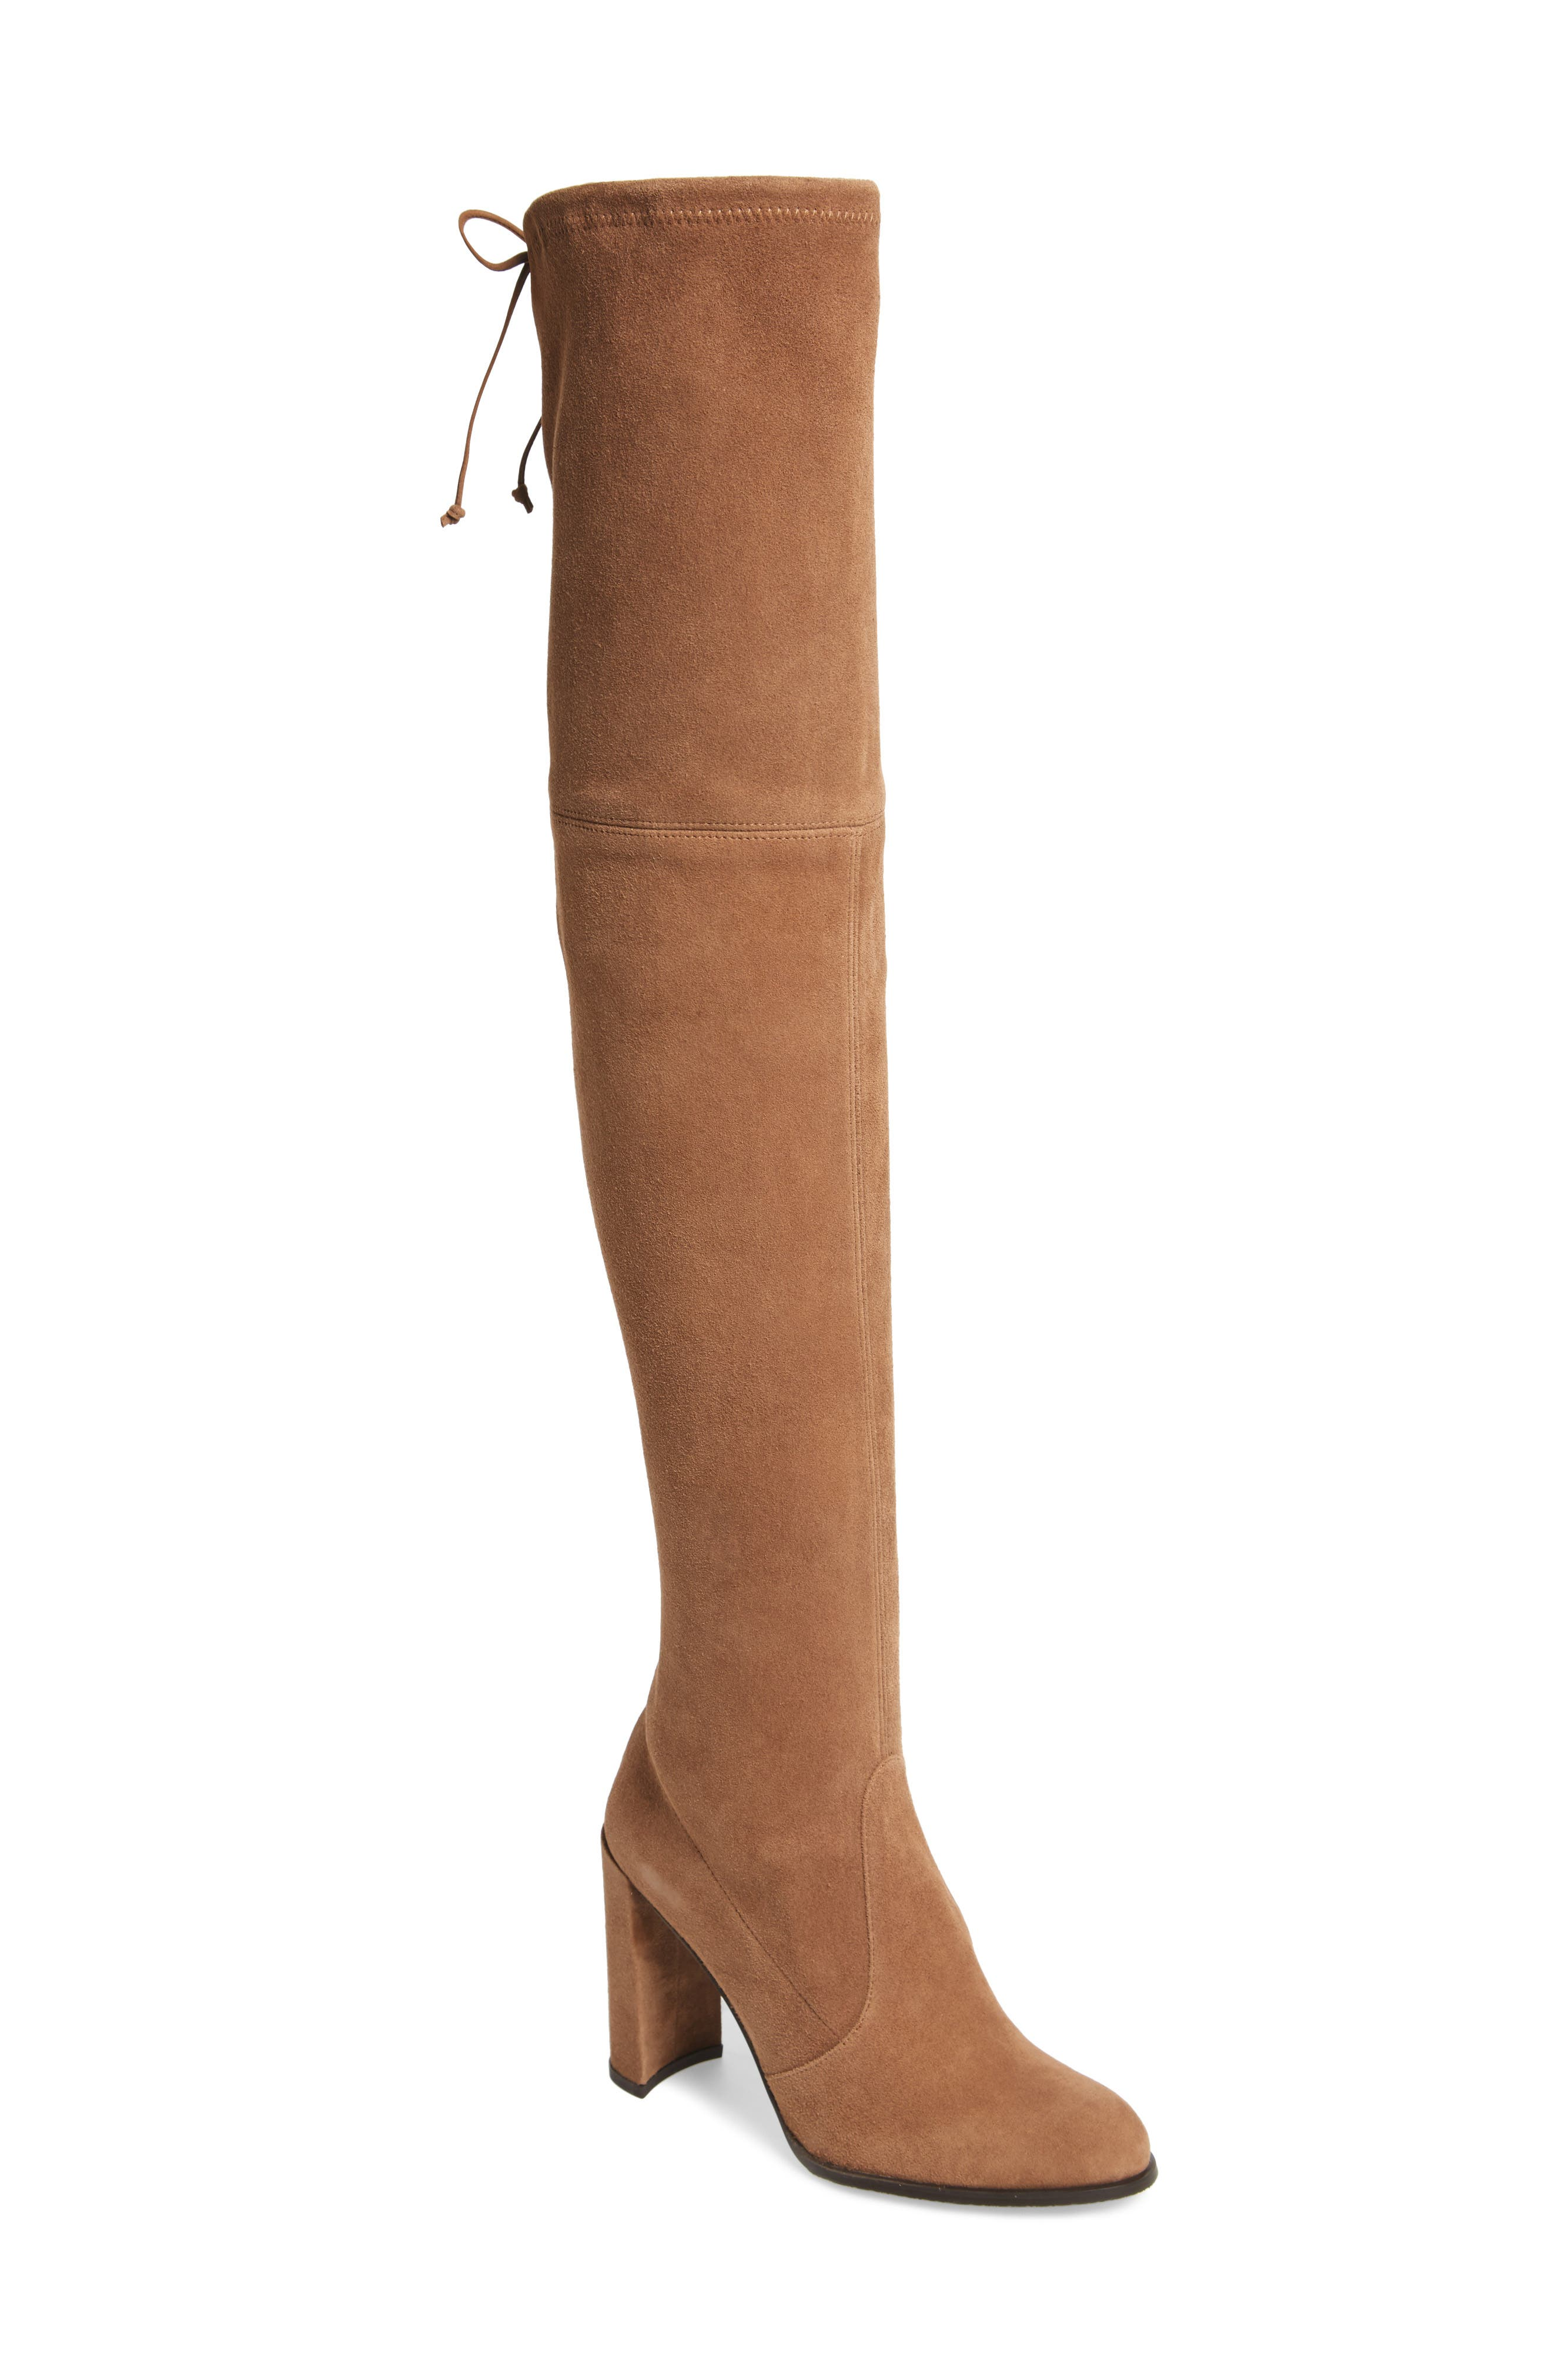 Hiline Over the Knee Boot,                             Main thumbnail 1, color,                             Nutmeg Suede